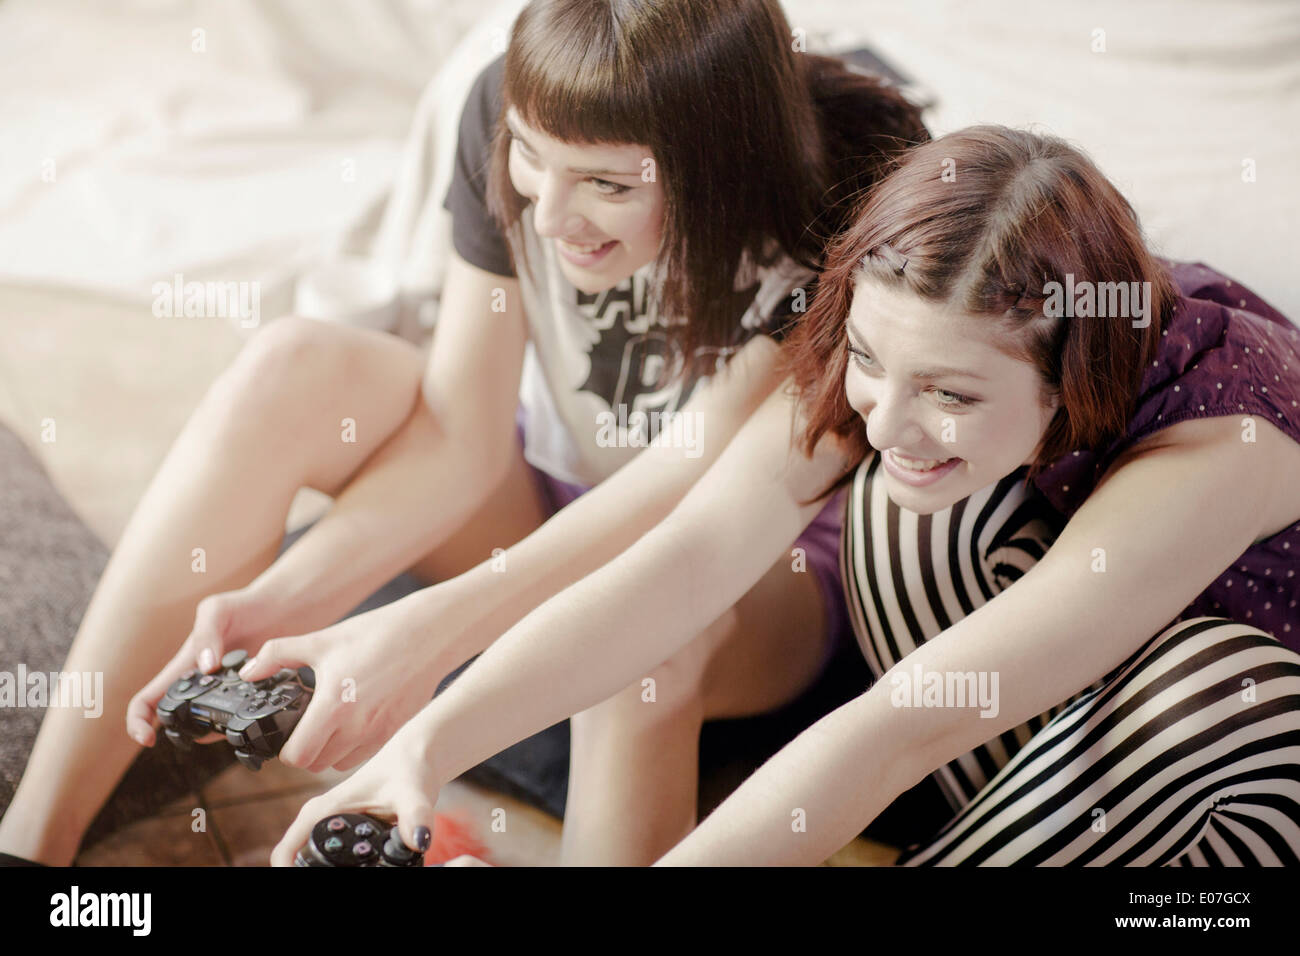 Two young women playing video games - Stock Image